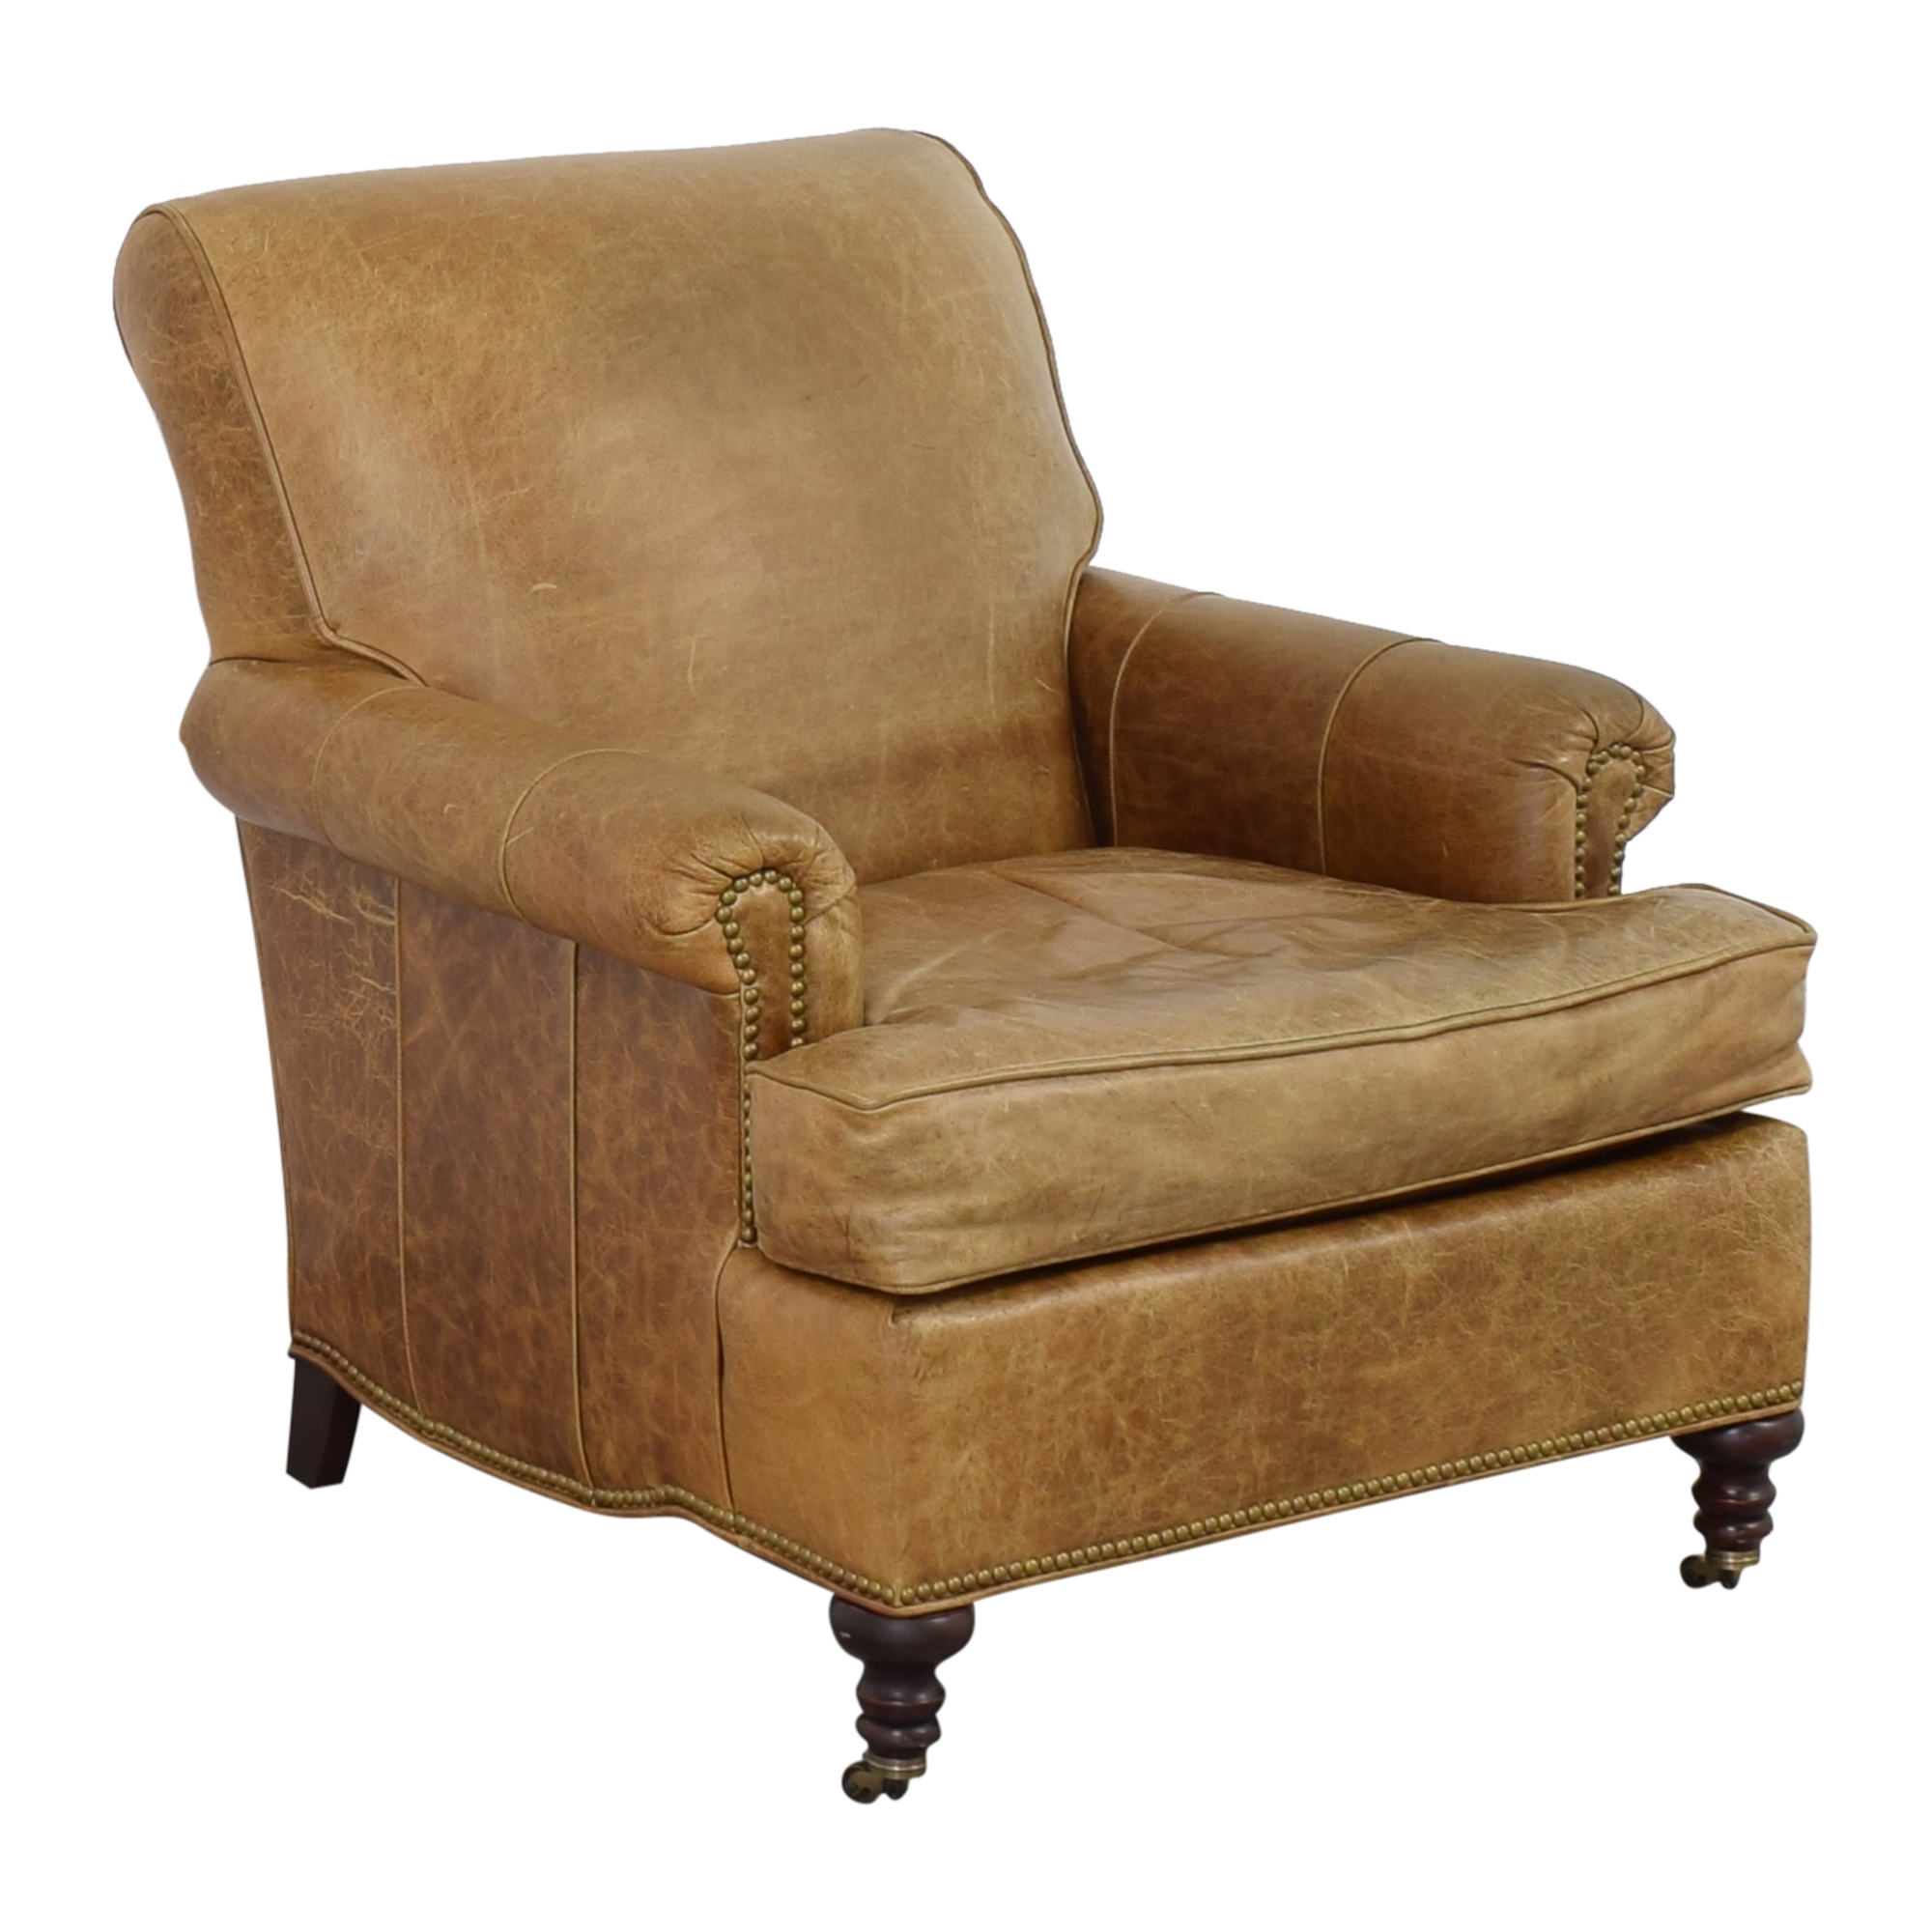 Burke Decor Southwood Club Chair Chairs